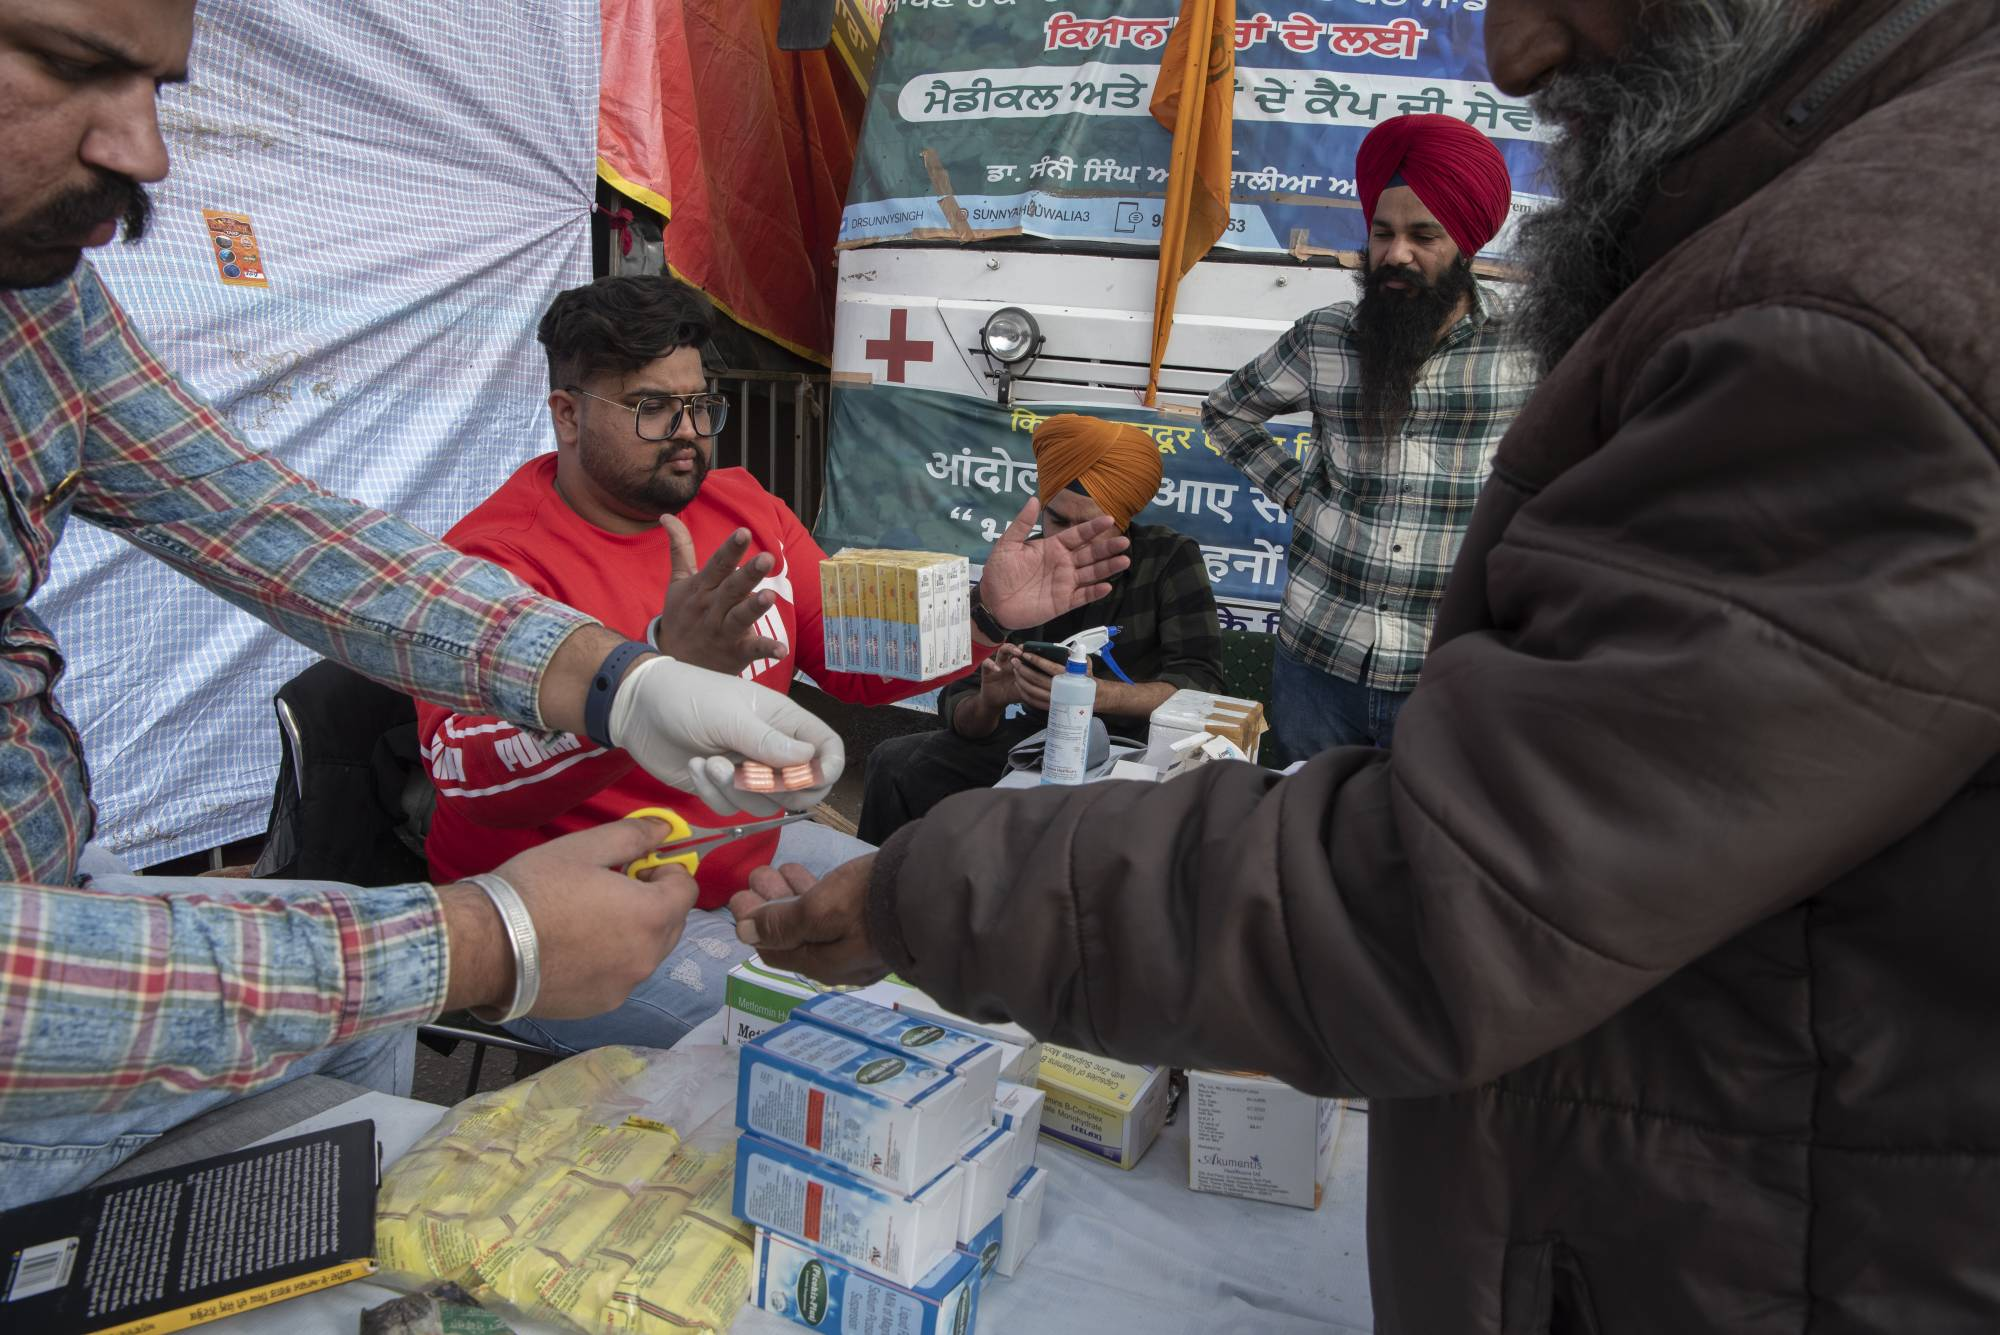 Free medicine is provided at a farmers protest in Singhu on Jan. 4. | SAUMYA KHANDELWAL / THE NEW YORK TIMES